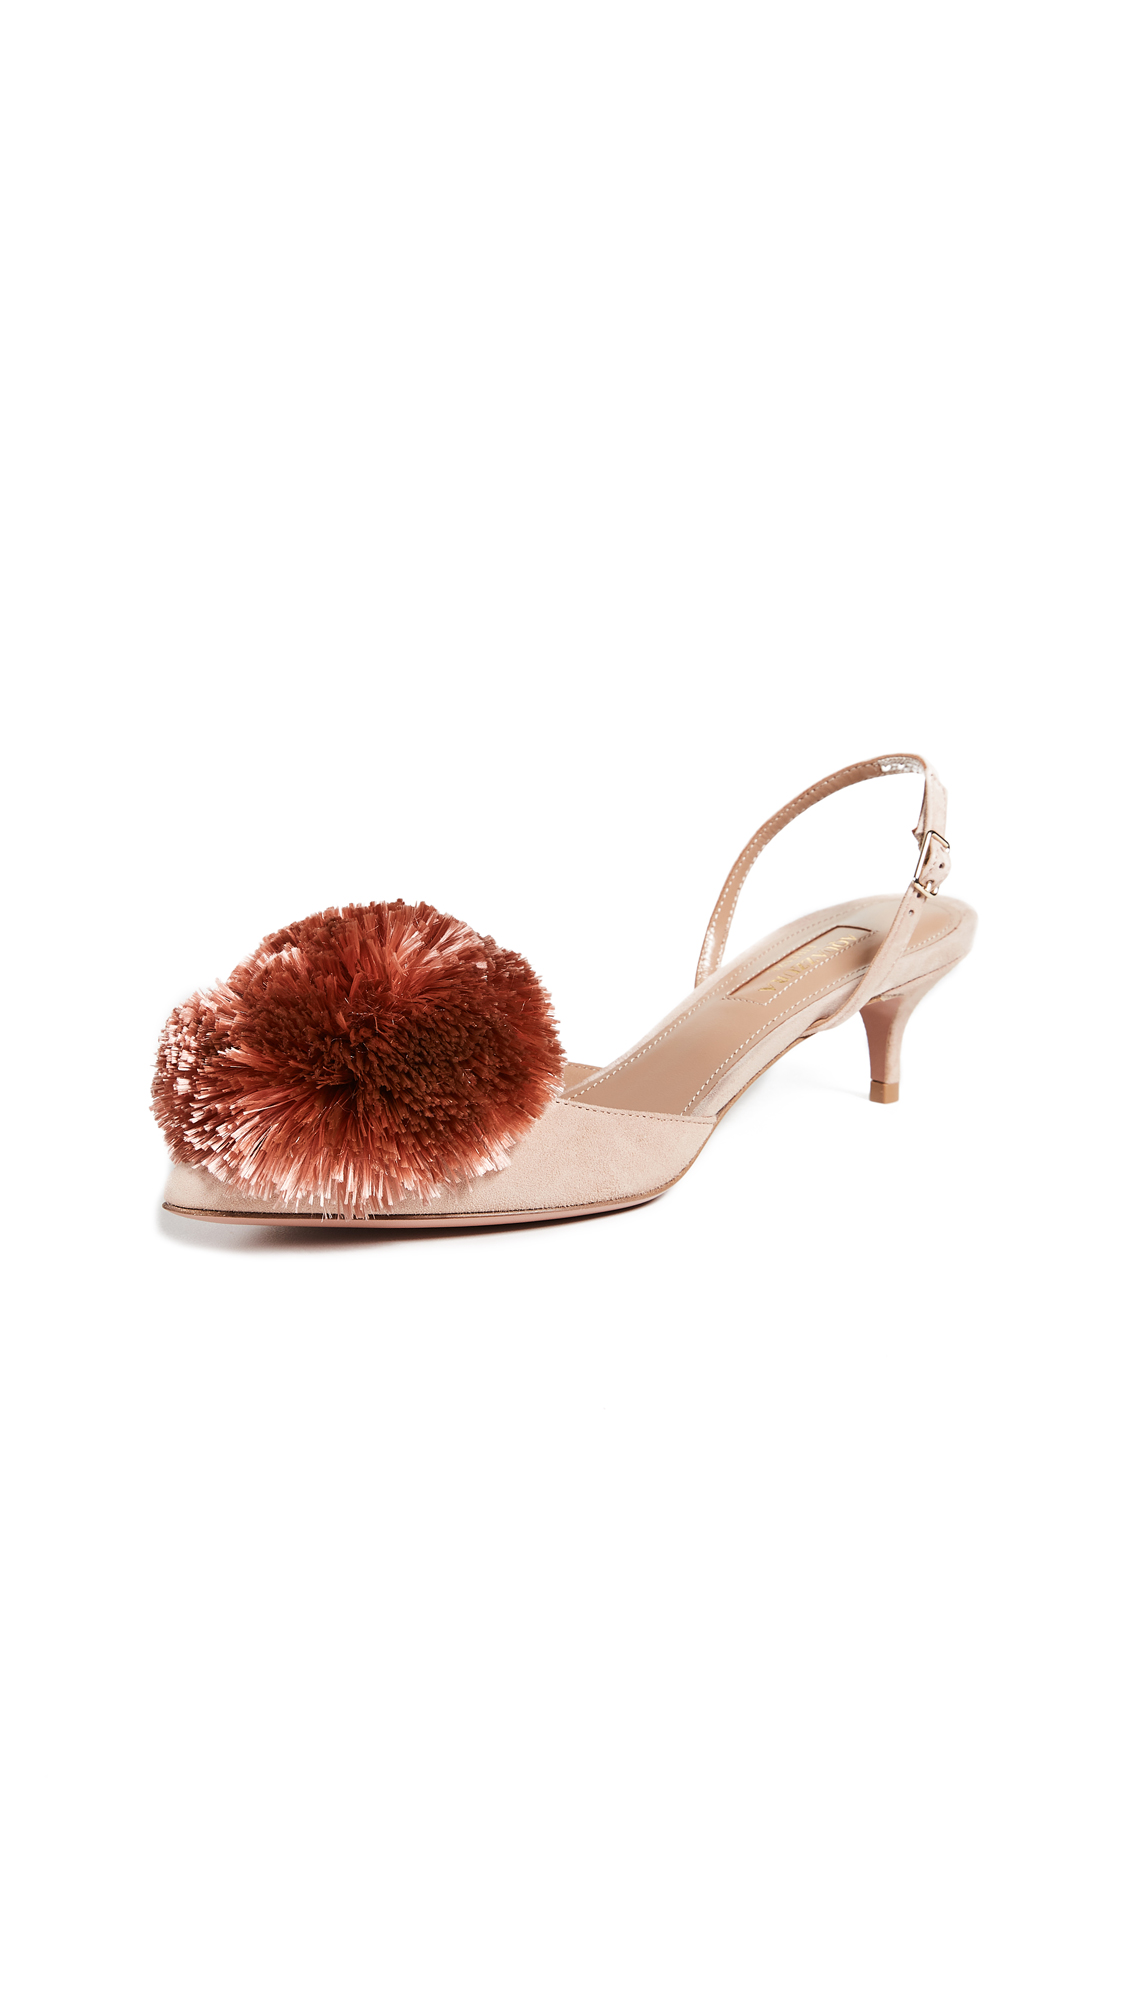 Aquazzura Powder Puff 45 Sling Pumps